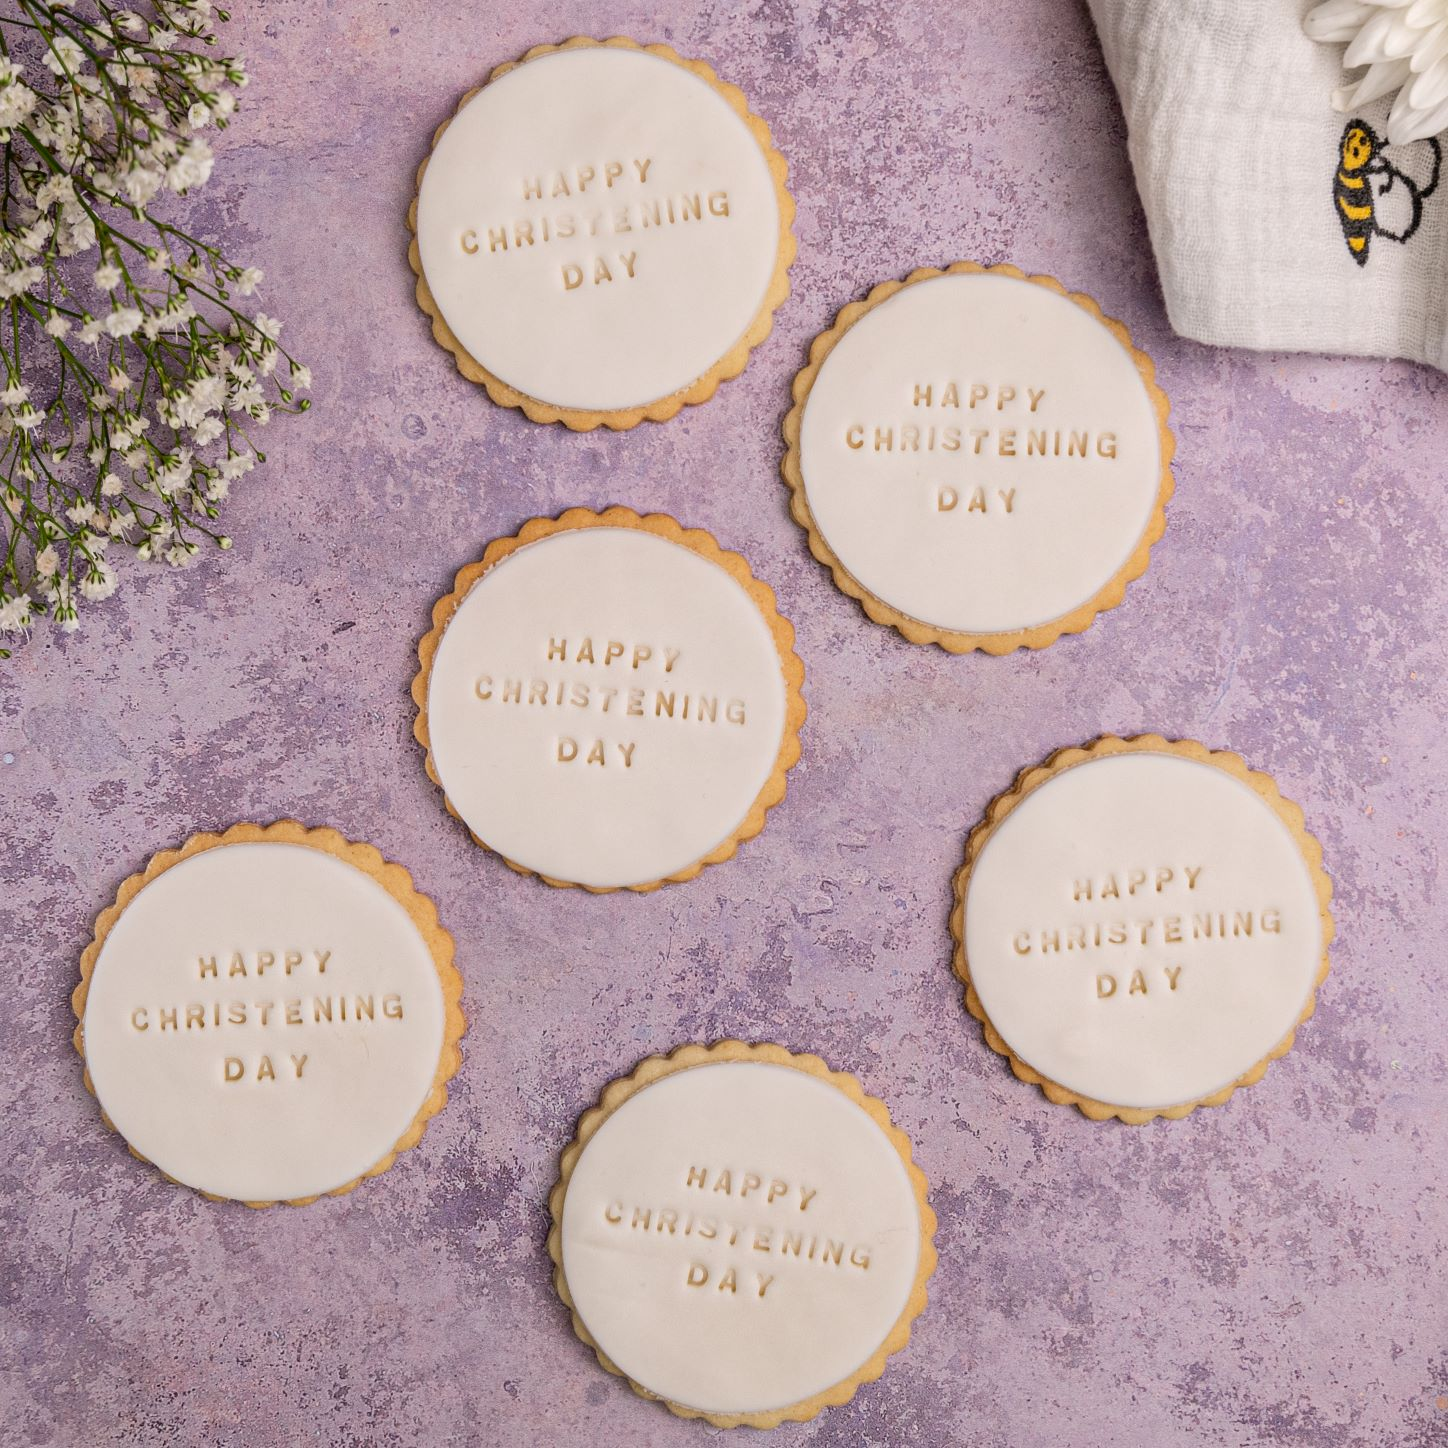 Iced Christening biscuits